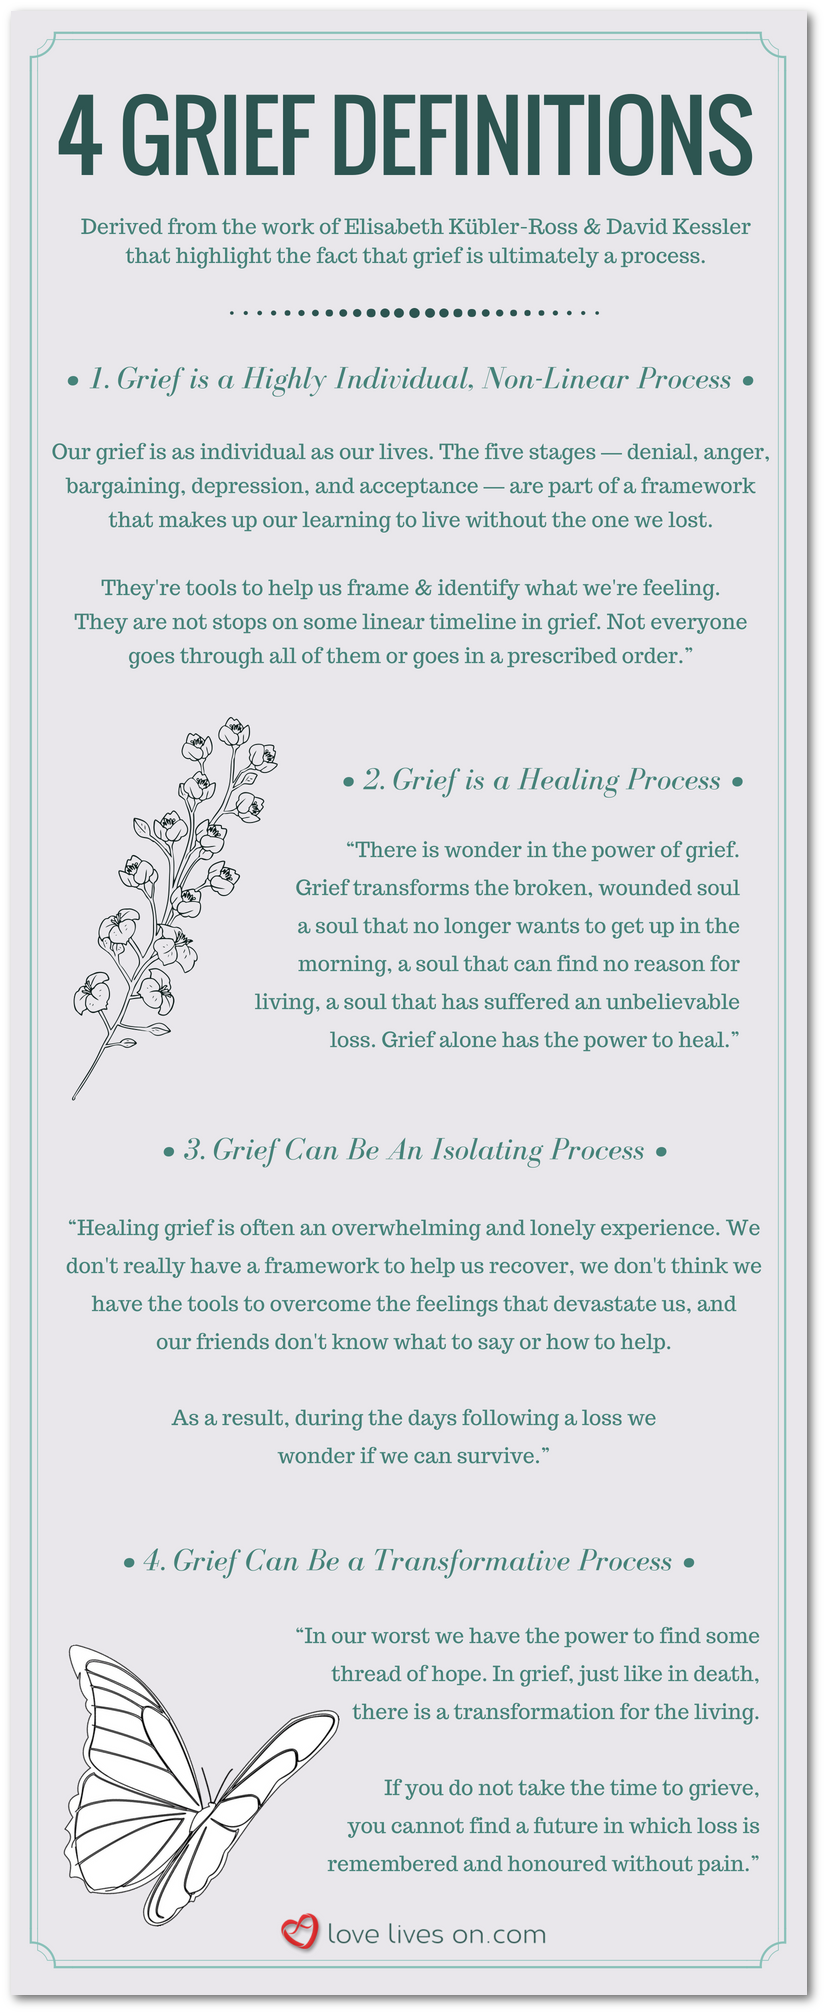 [Infographic] 4 Grief Definitions